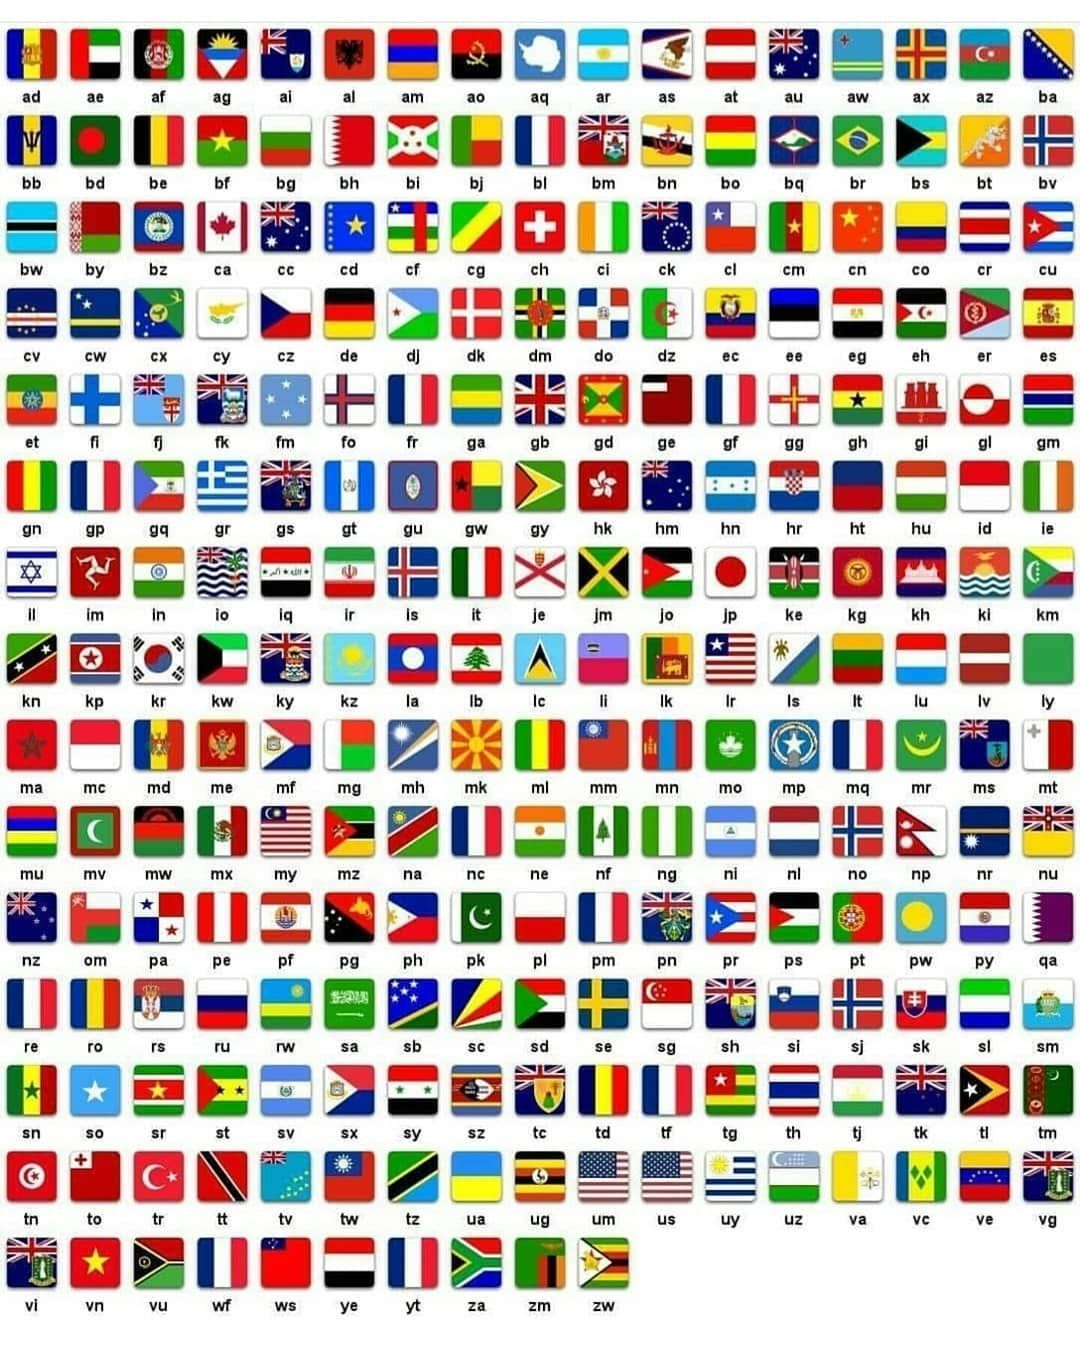 Wich One Is Your Flag Cual Es Tu Bandera Underfloor Heating And Thermostats Thermostas Heati All Country Flags Countries And Flags Flags Of The World [ 1350 x 1080 Pixel ]